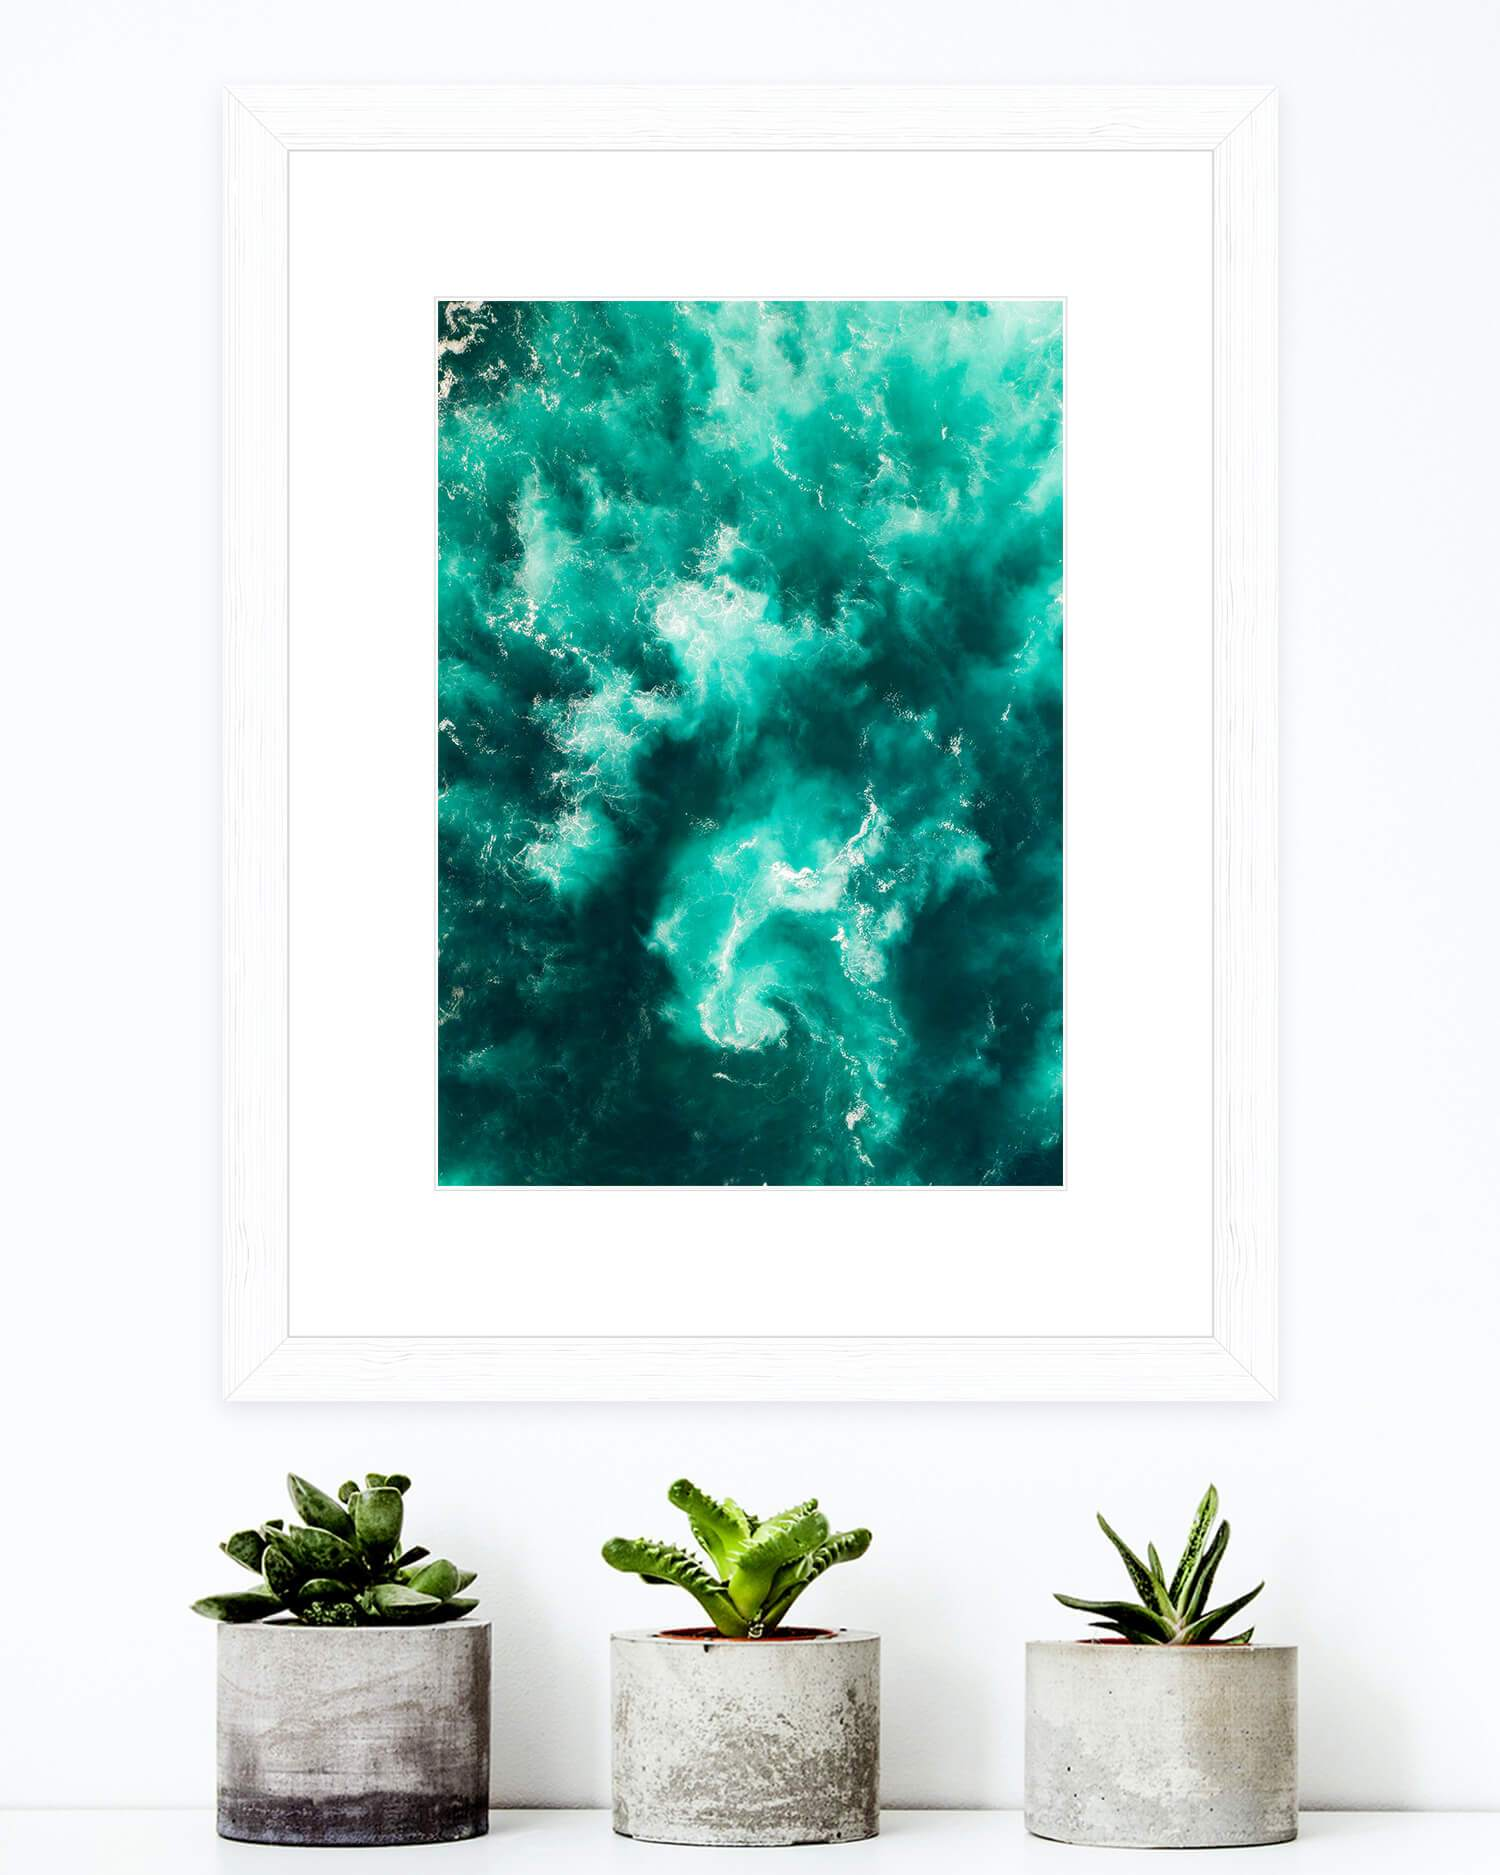 Azure Co Aerial Artwork - Abstract landscape photograph